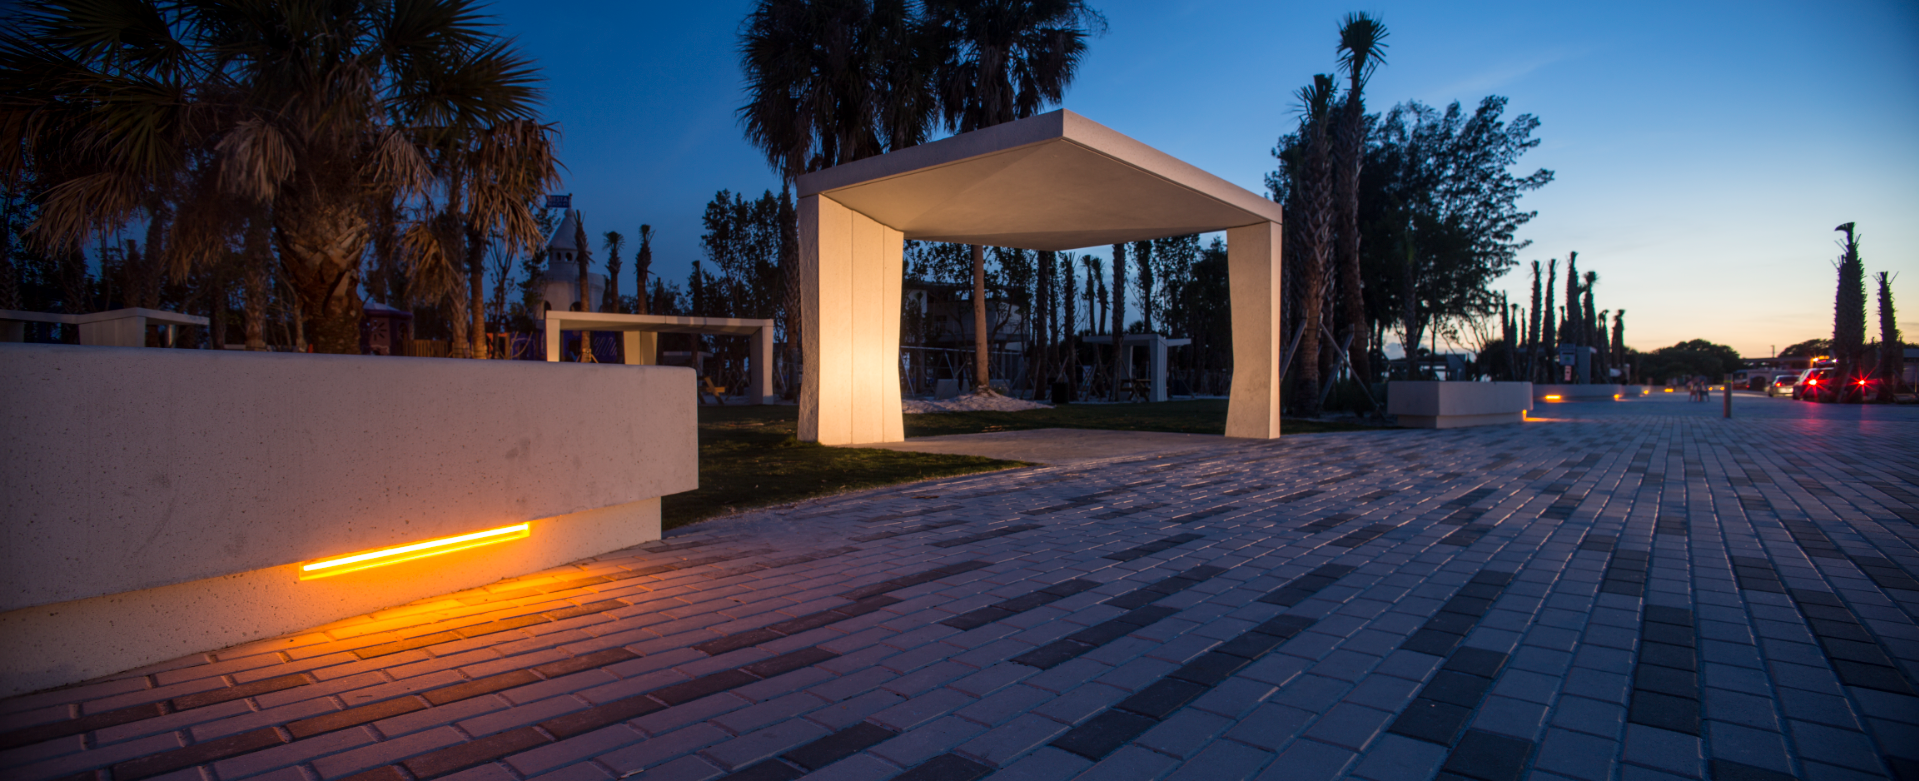 New beach picnic shelters earn architectural nod